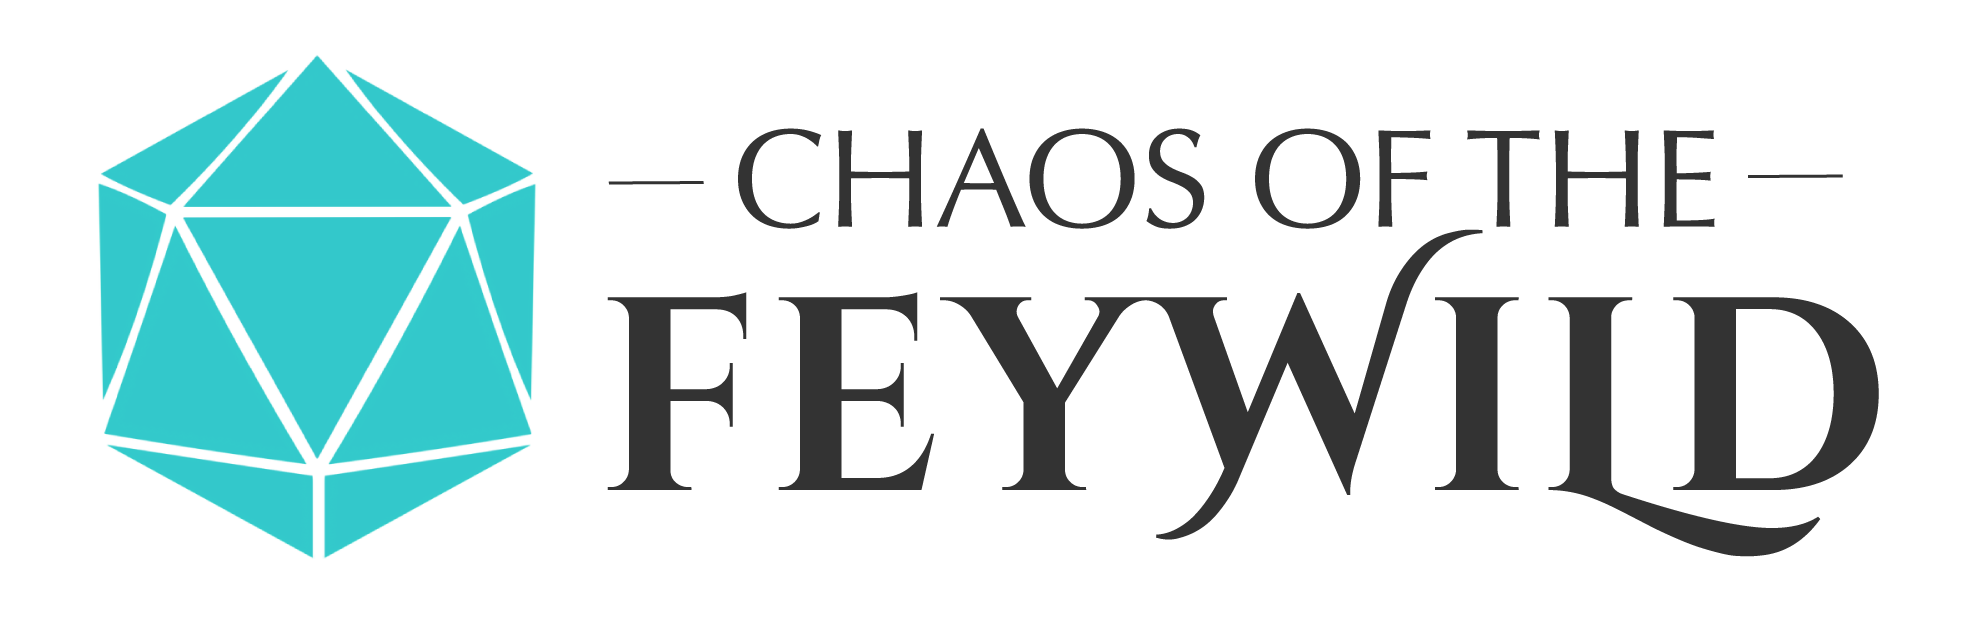 Chaos of the Feywild